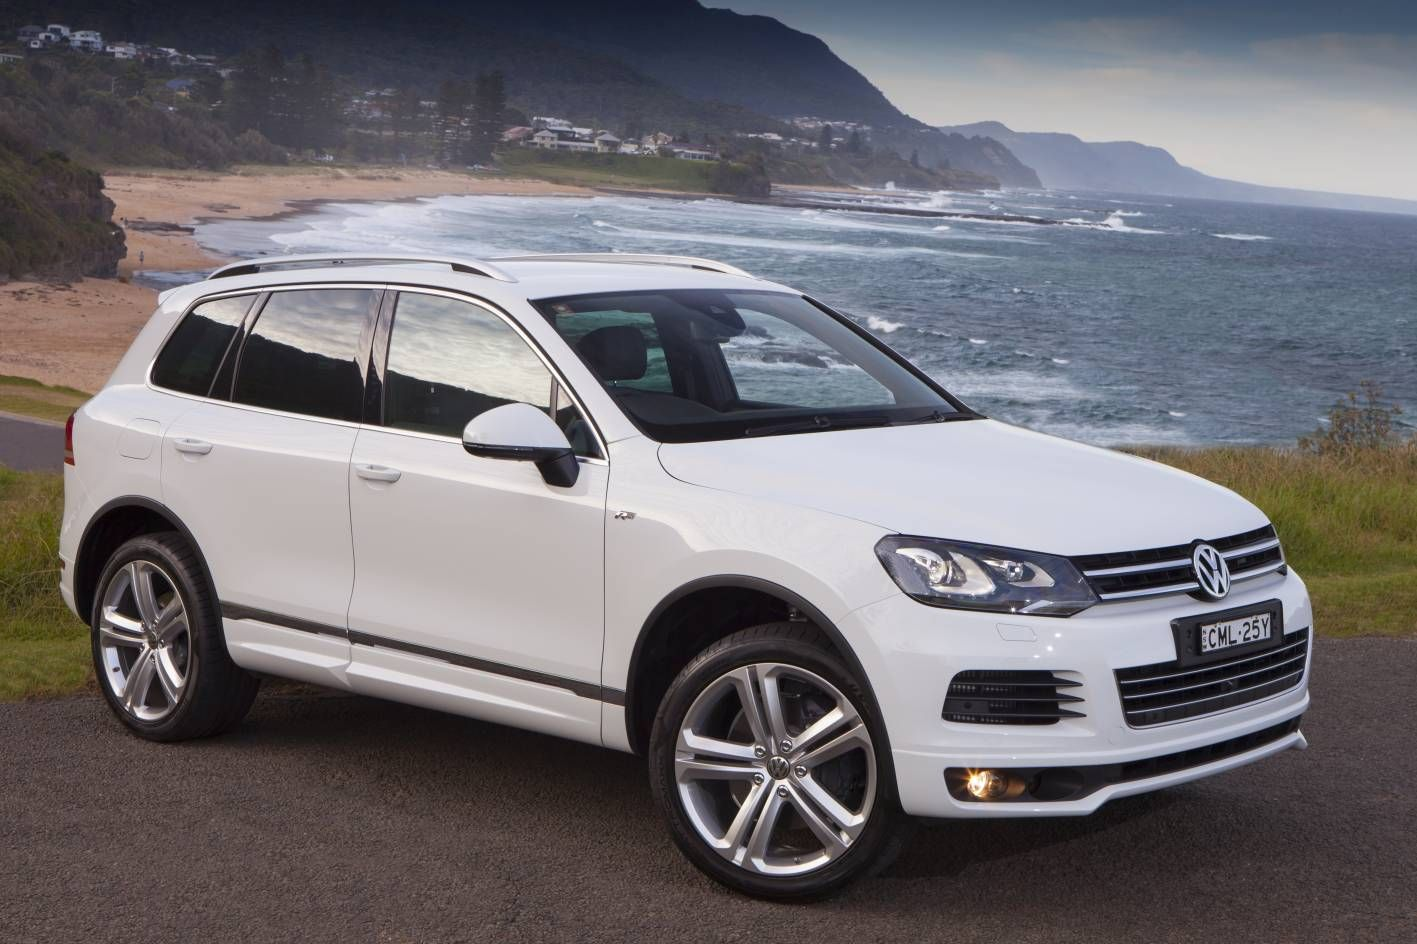 Vw touareg tdi r line see more amsoil synthetic motor oil for european cars